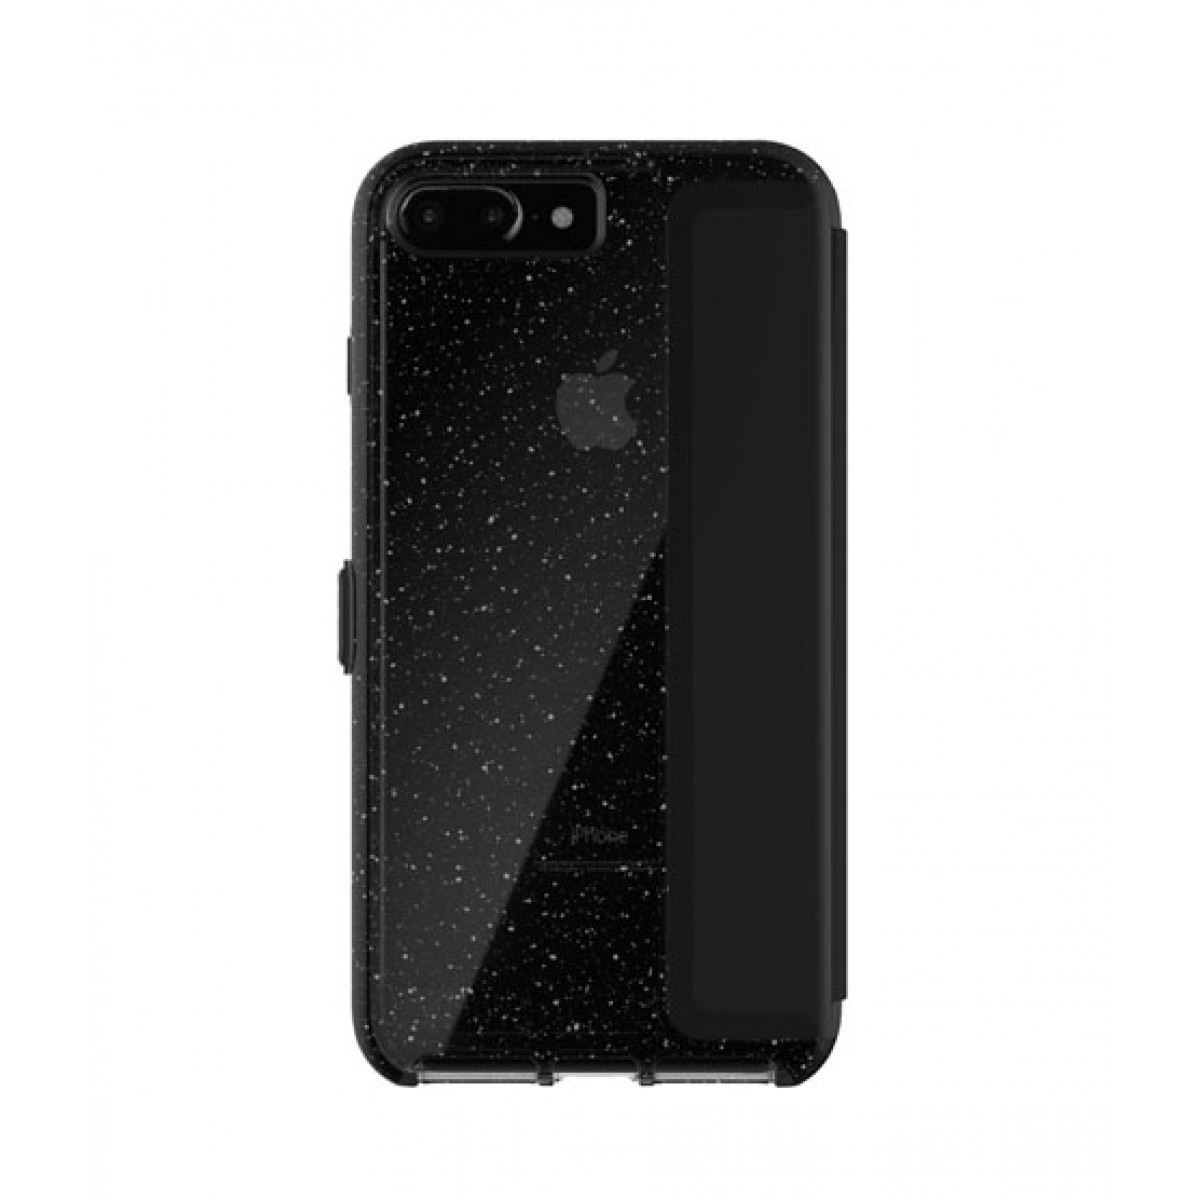 new product 66a7d e94c7 Tech21 Evo Wallet Active Smokey/Black Case For iPhone 8 Plus